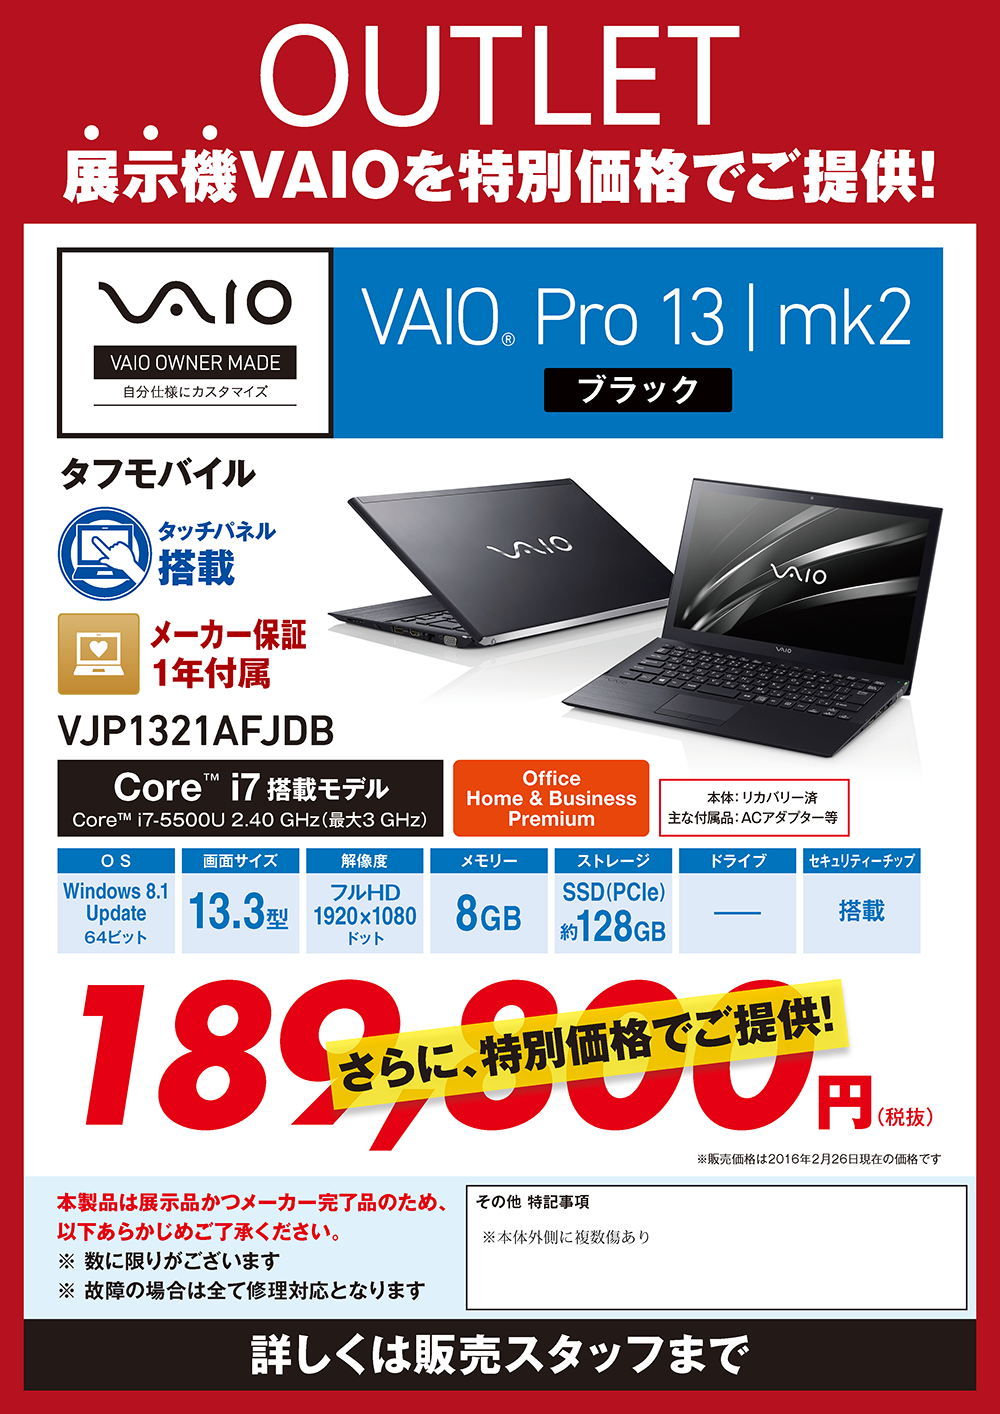 VAIO_outlet-price_ページ_08